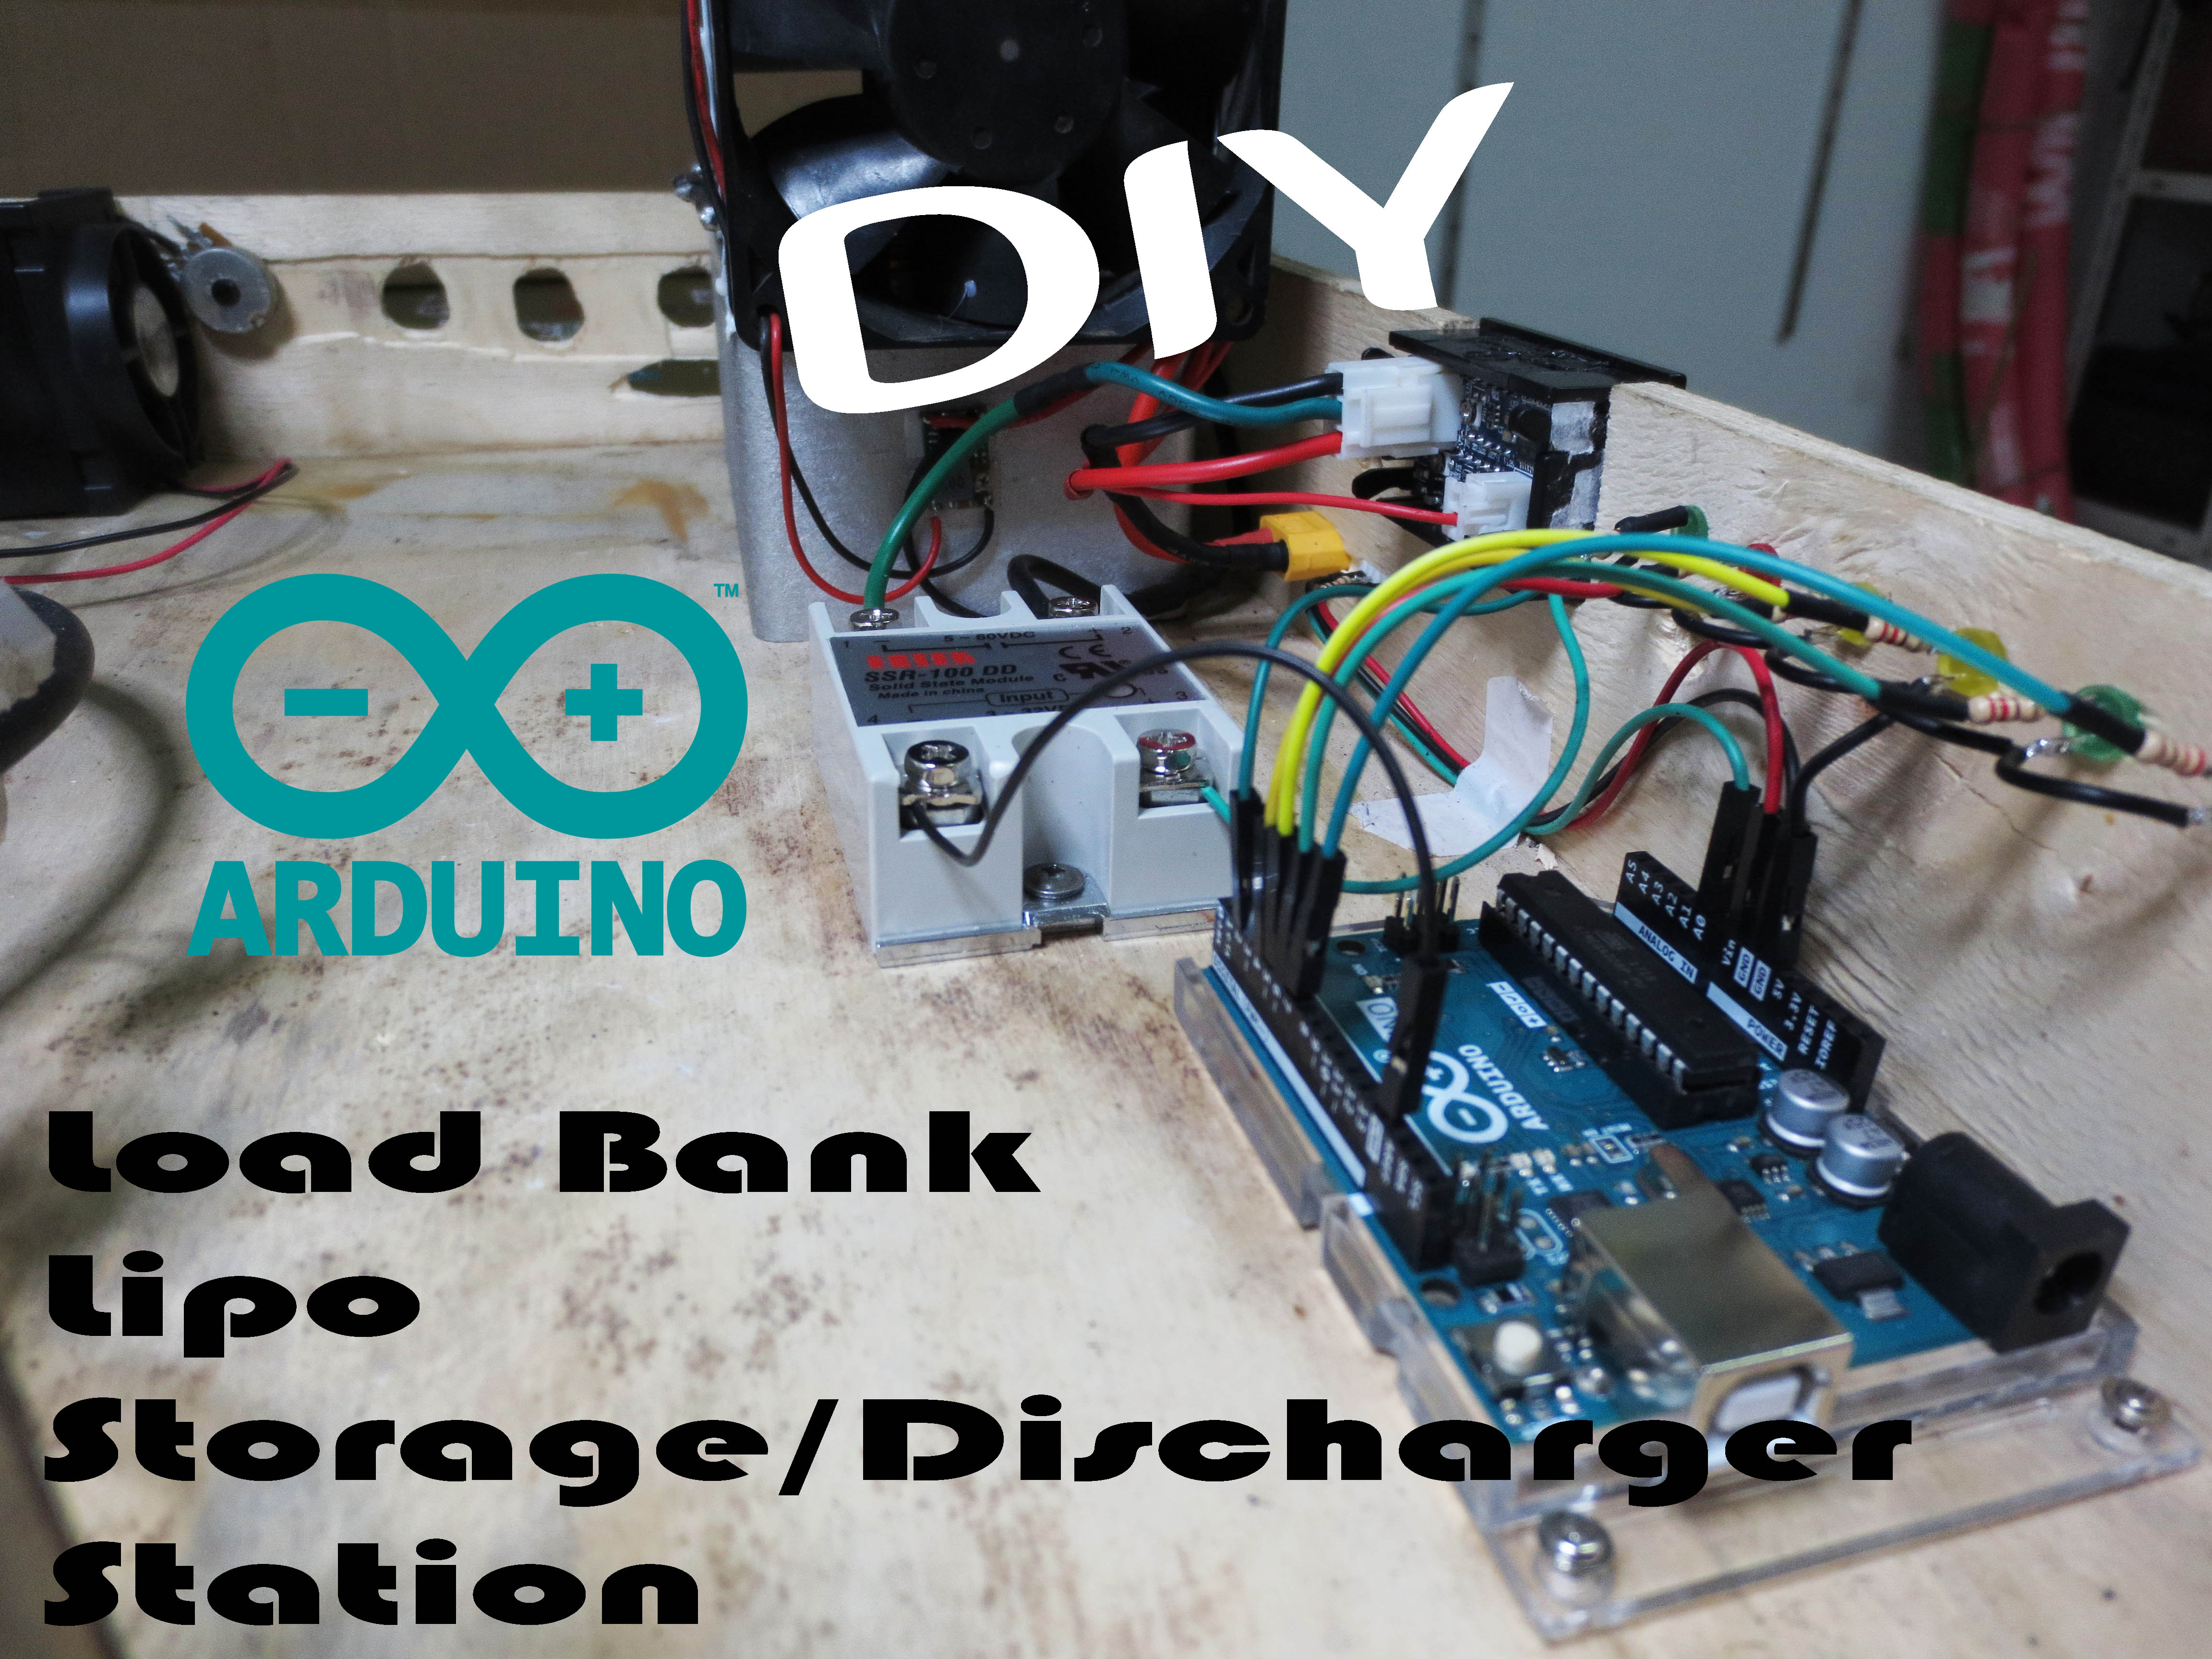 Picture of DIY Arduino Load Bank Lipo Storage/Discharger Station